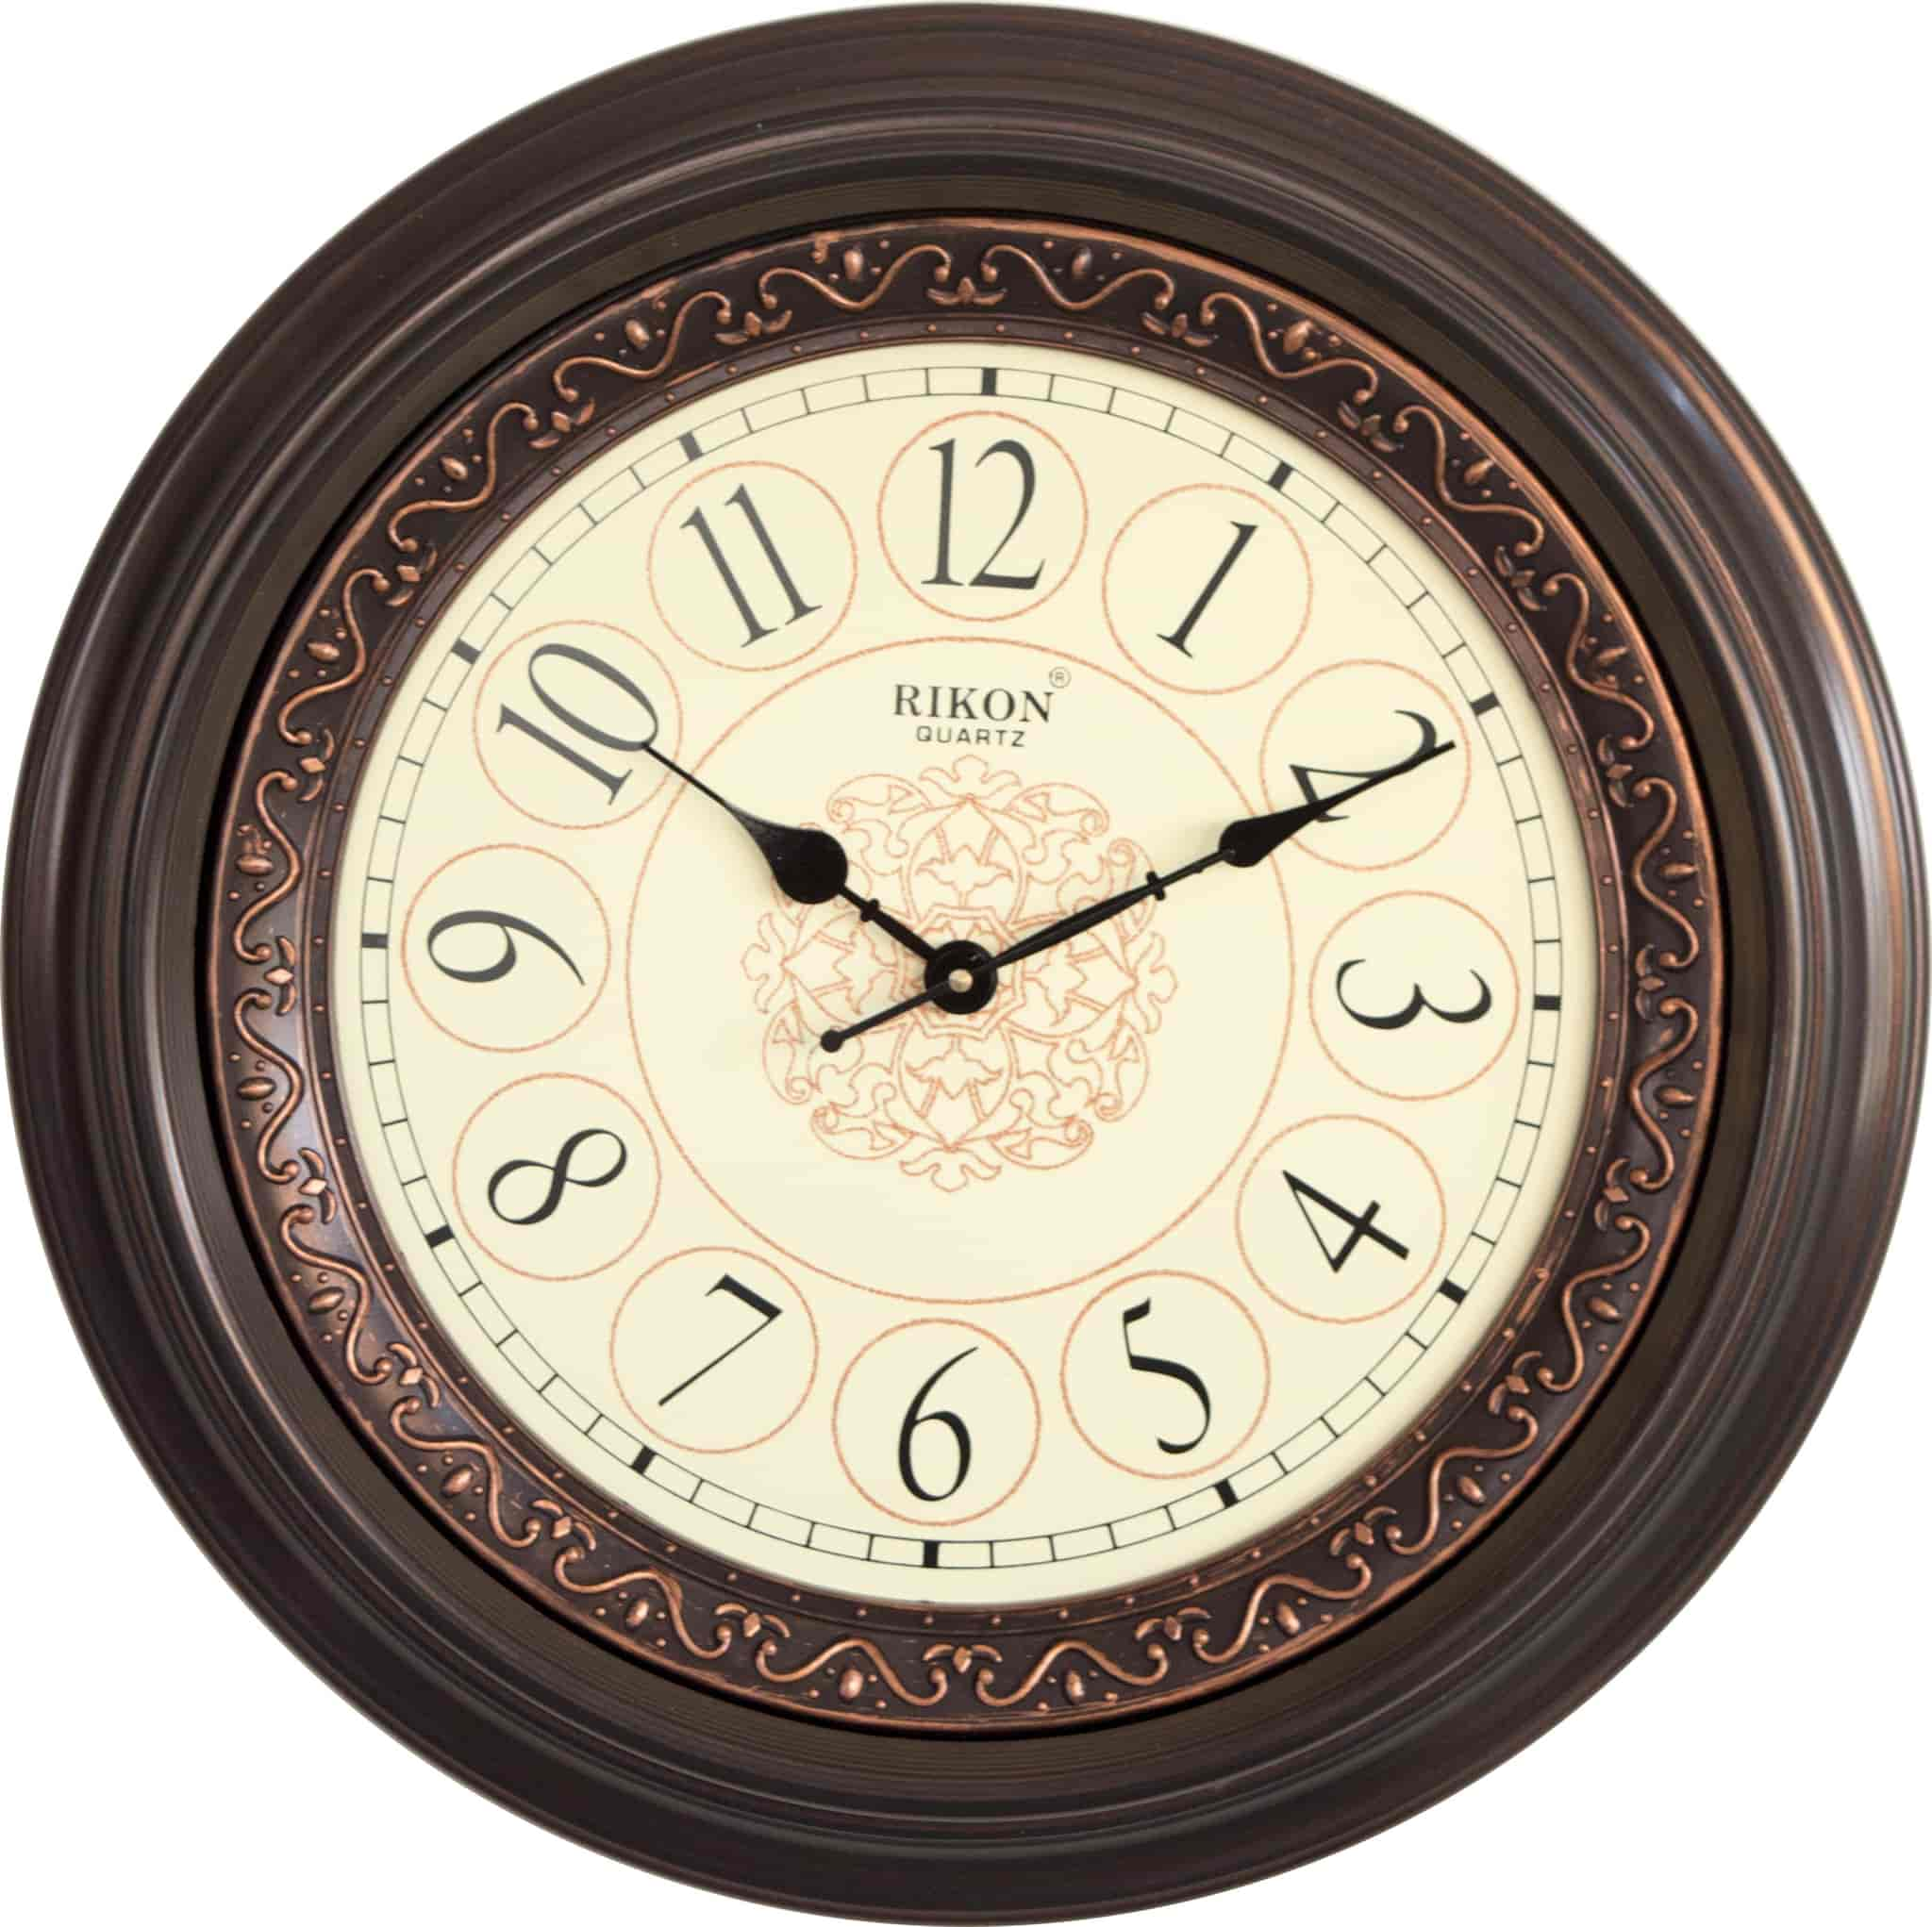 Buy rikon 1508 ivory brown antique wall clock features price rikon 1508 ivory brown antique wall clock amipublicfo Gallery